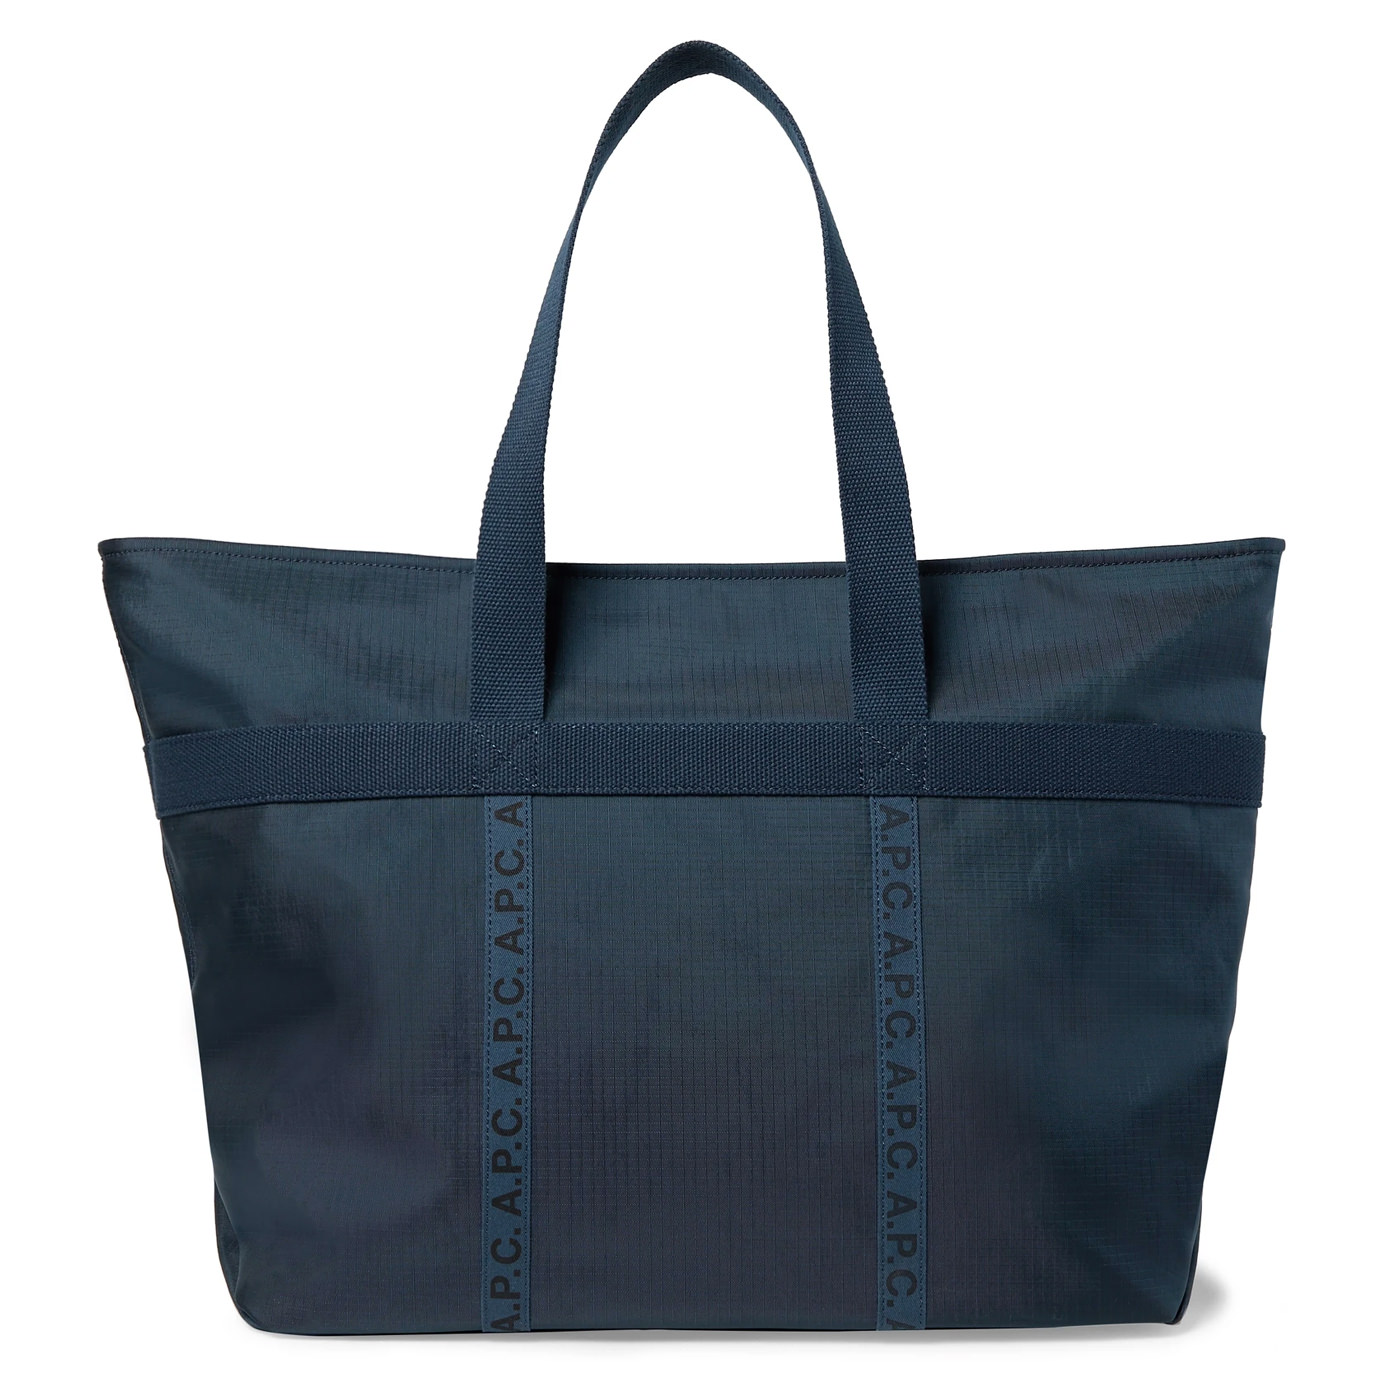 Style Mr Porter ToteBag APC Navy